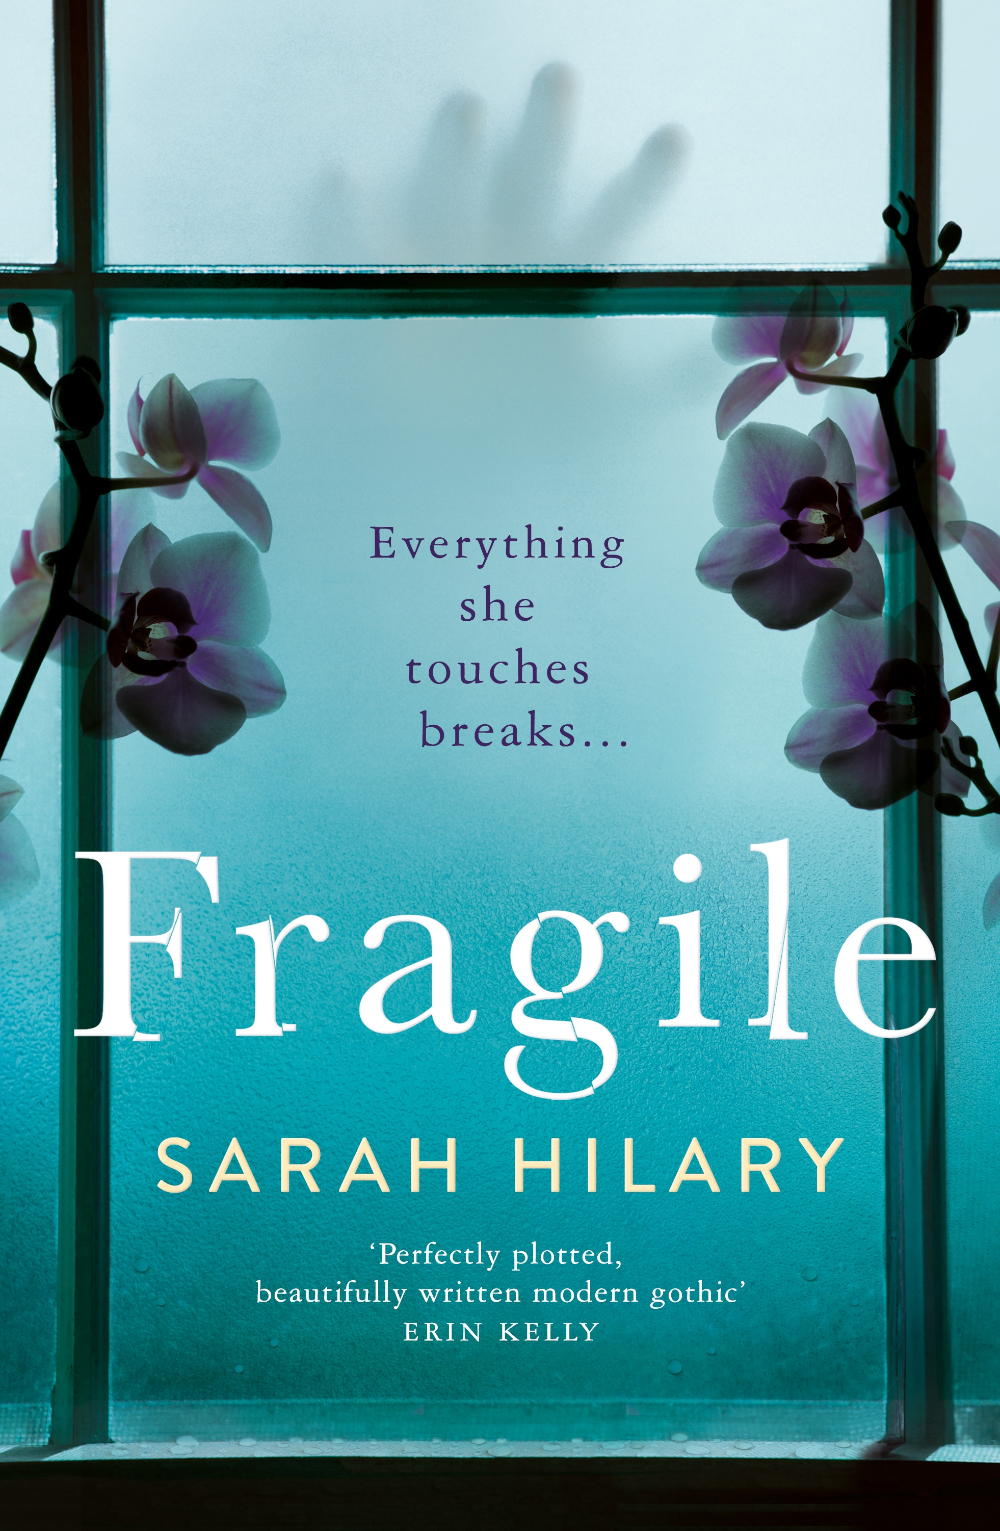 Win a Signed Copy of Fragile by Sarah Hilary